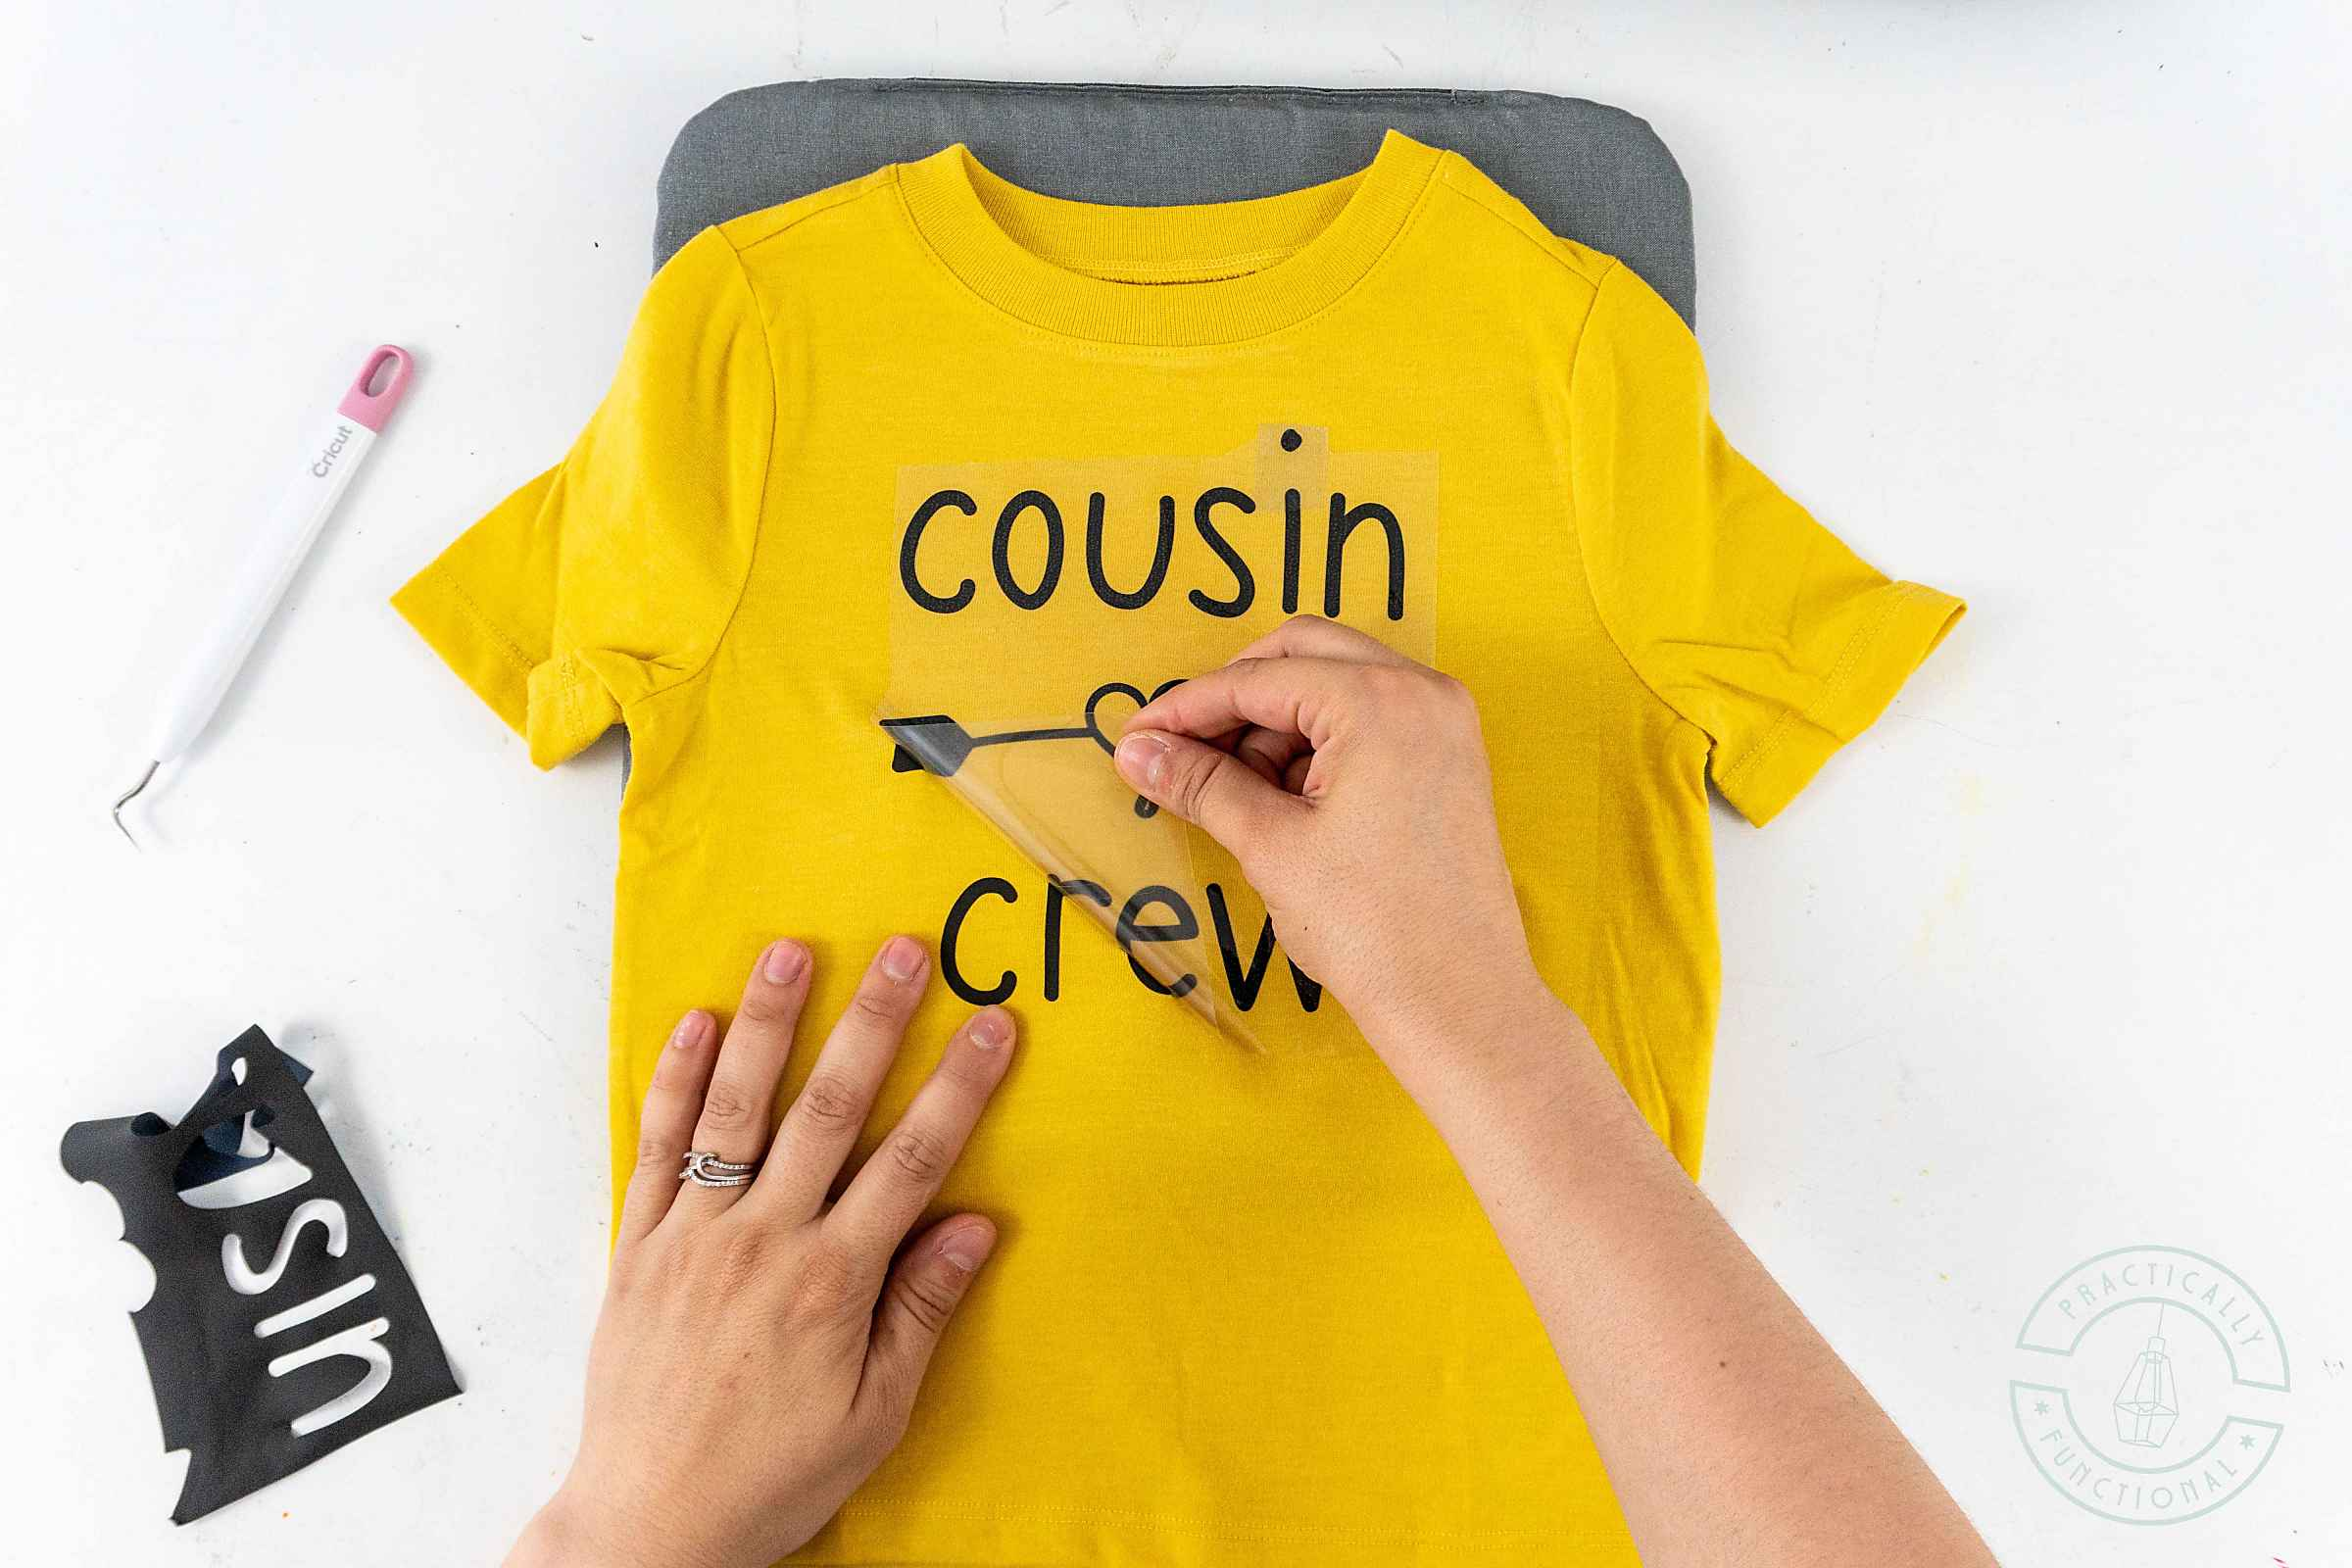 How To Use Heat Transfer Vinyl With A Cricut Machine A Step